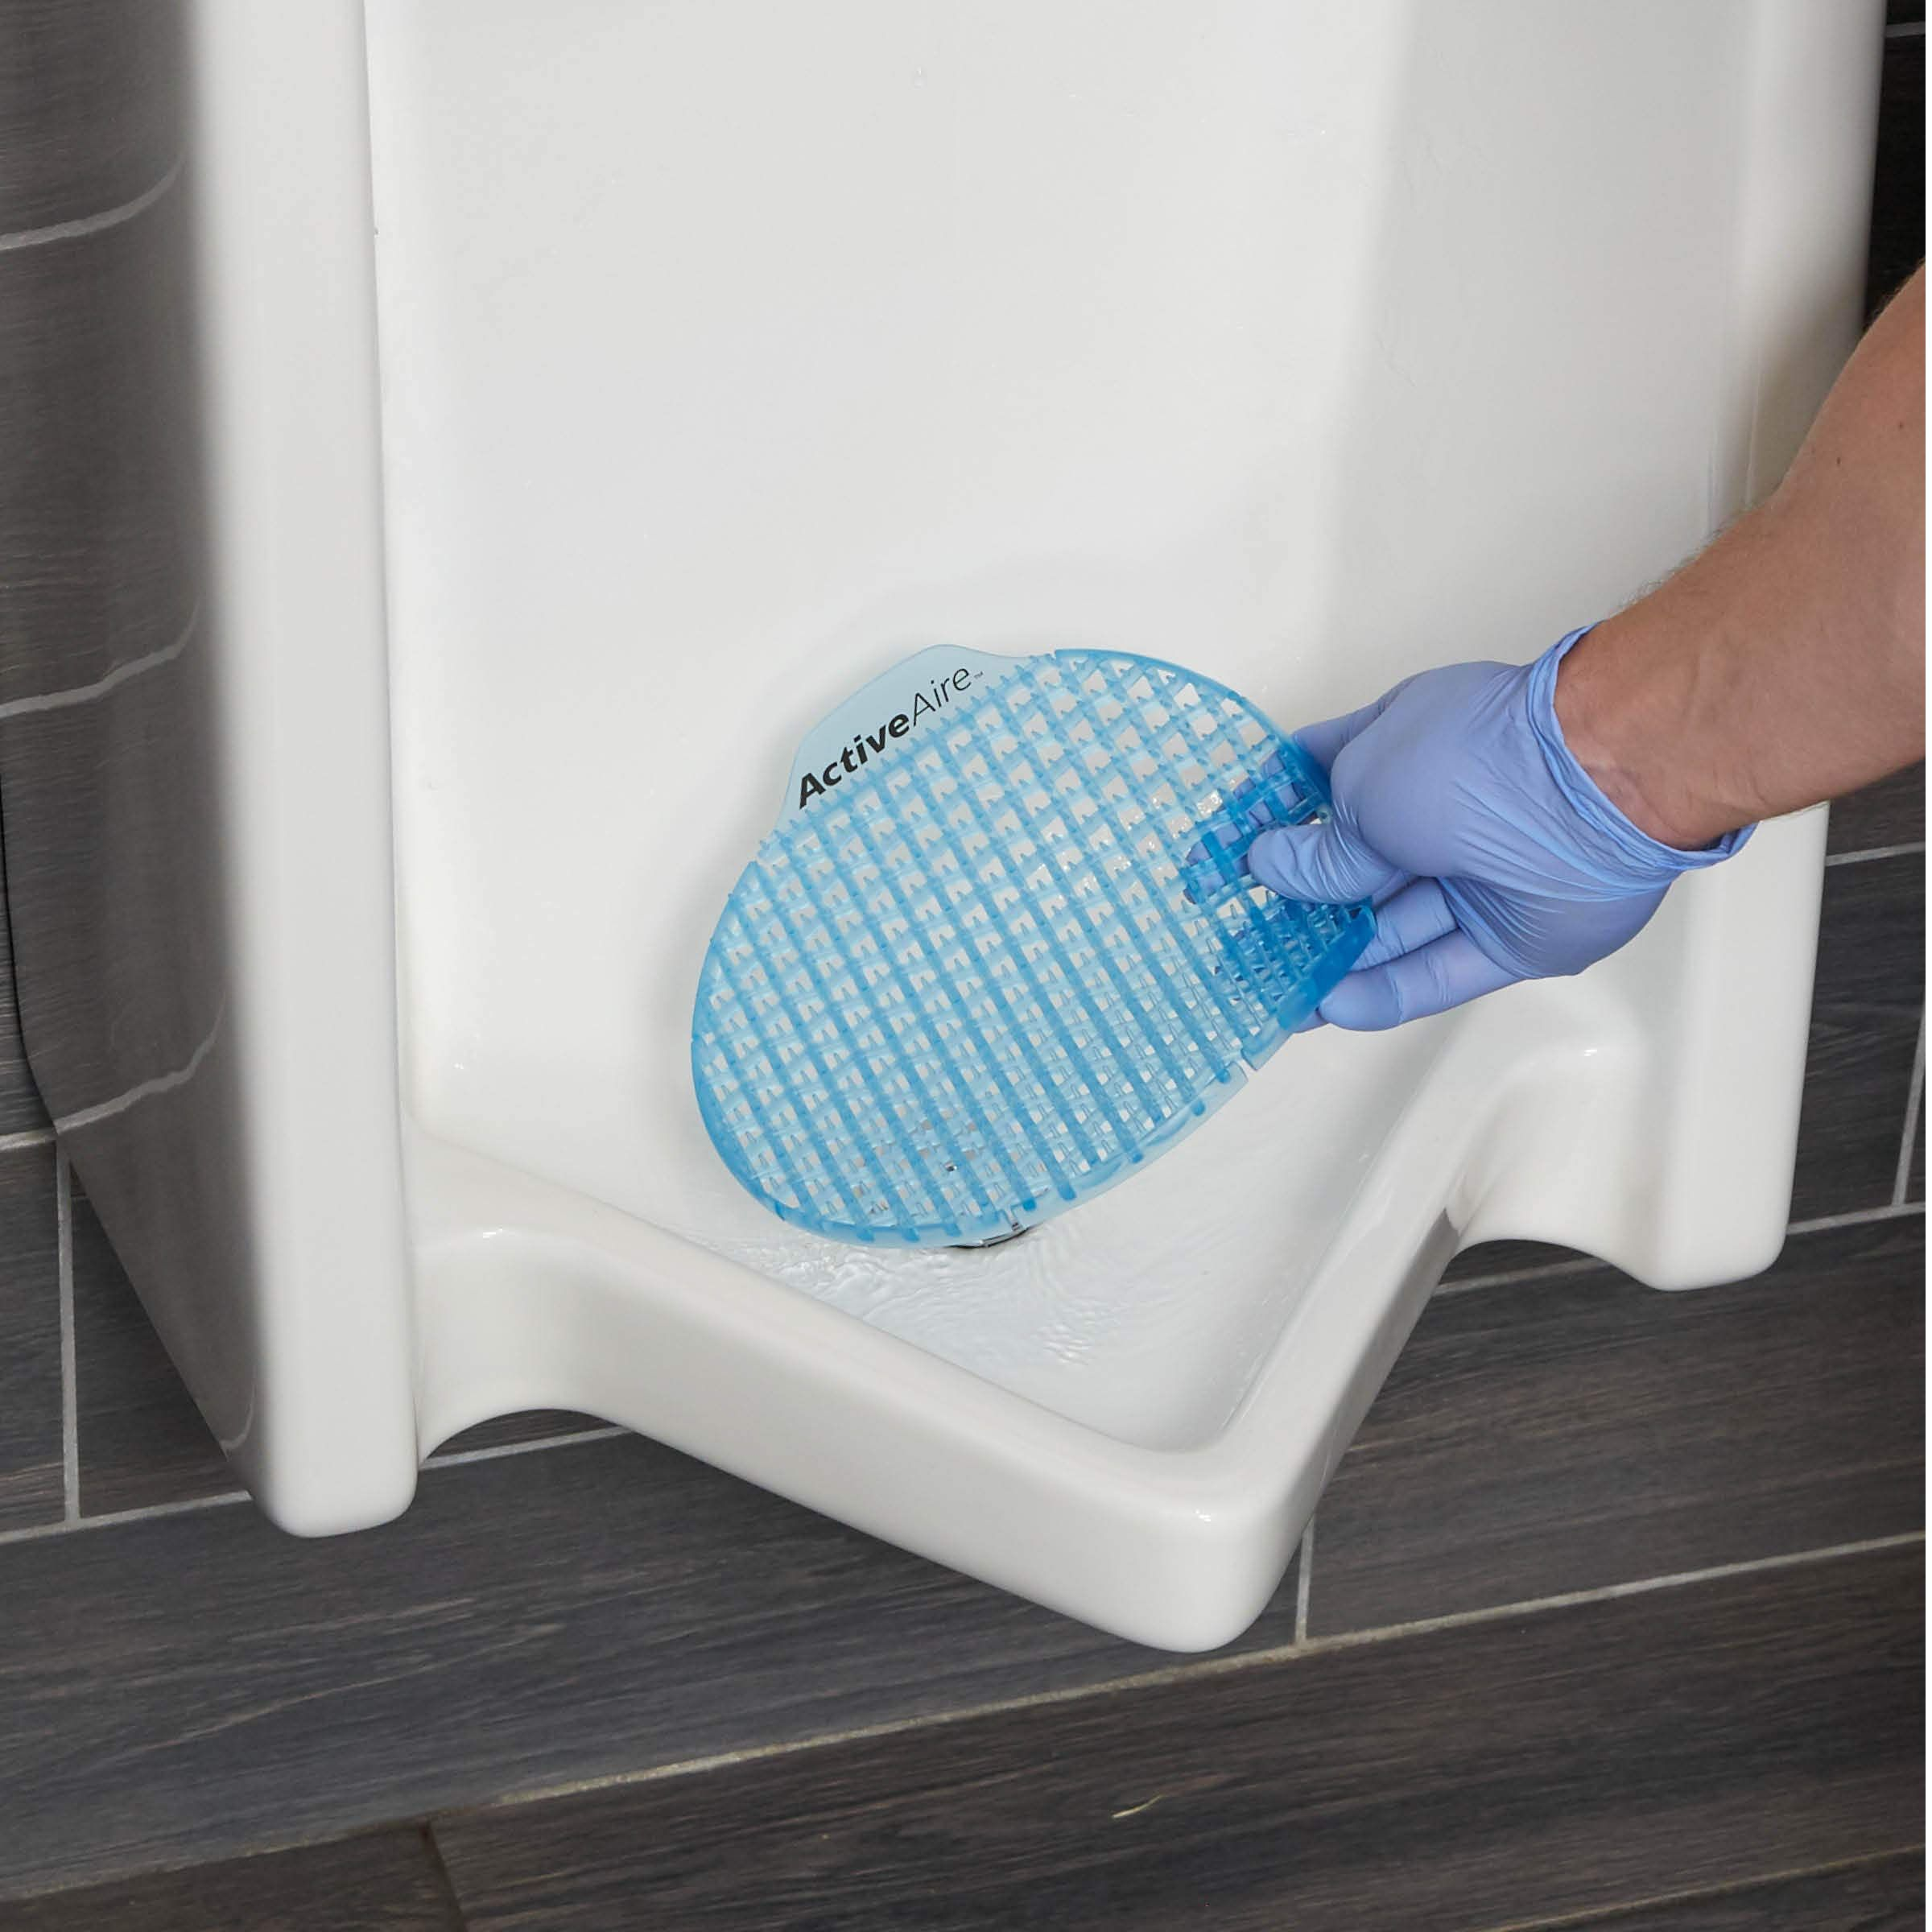 ActiveAire LowSplash Deodorizer Urinal Screen by GP PRO